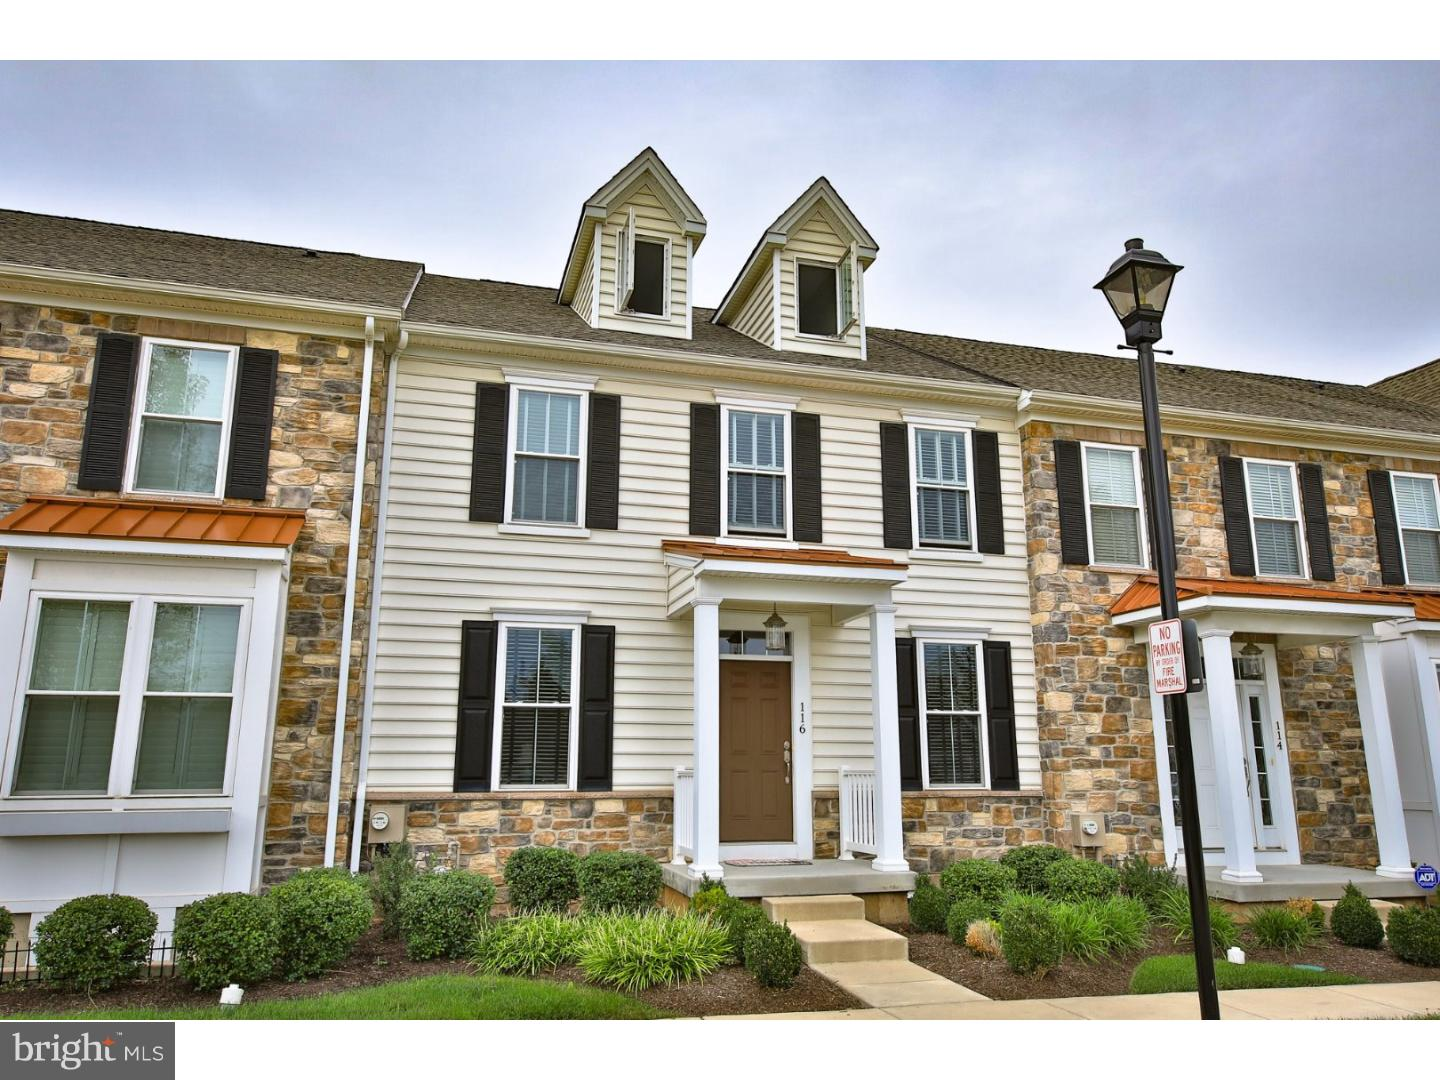 116 DELANCEY PLACE, PLYMOUTH MEETING, PA 19462